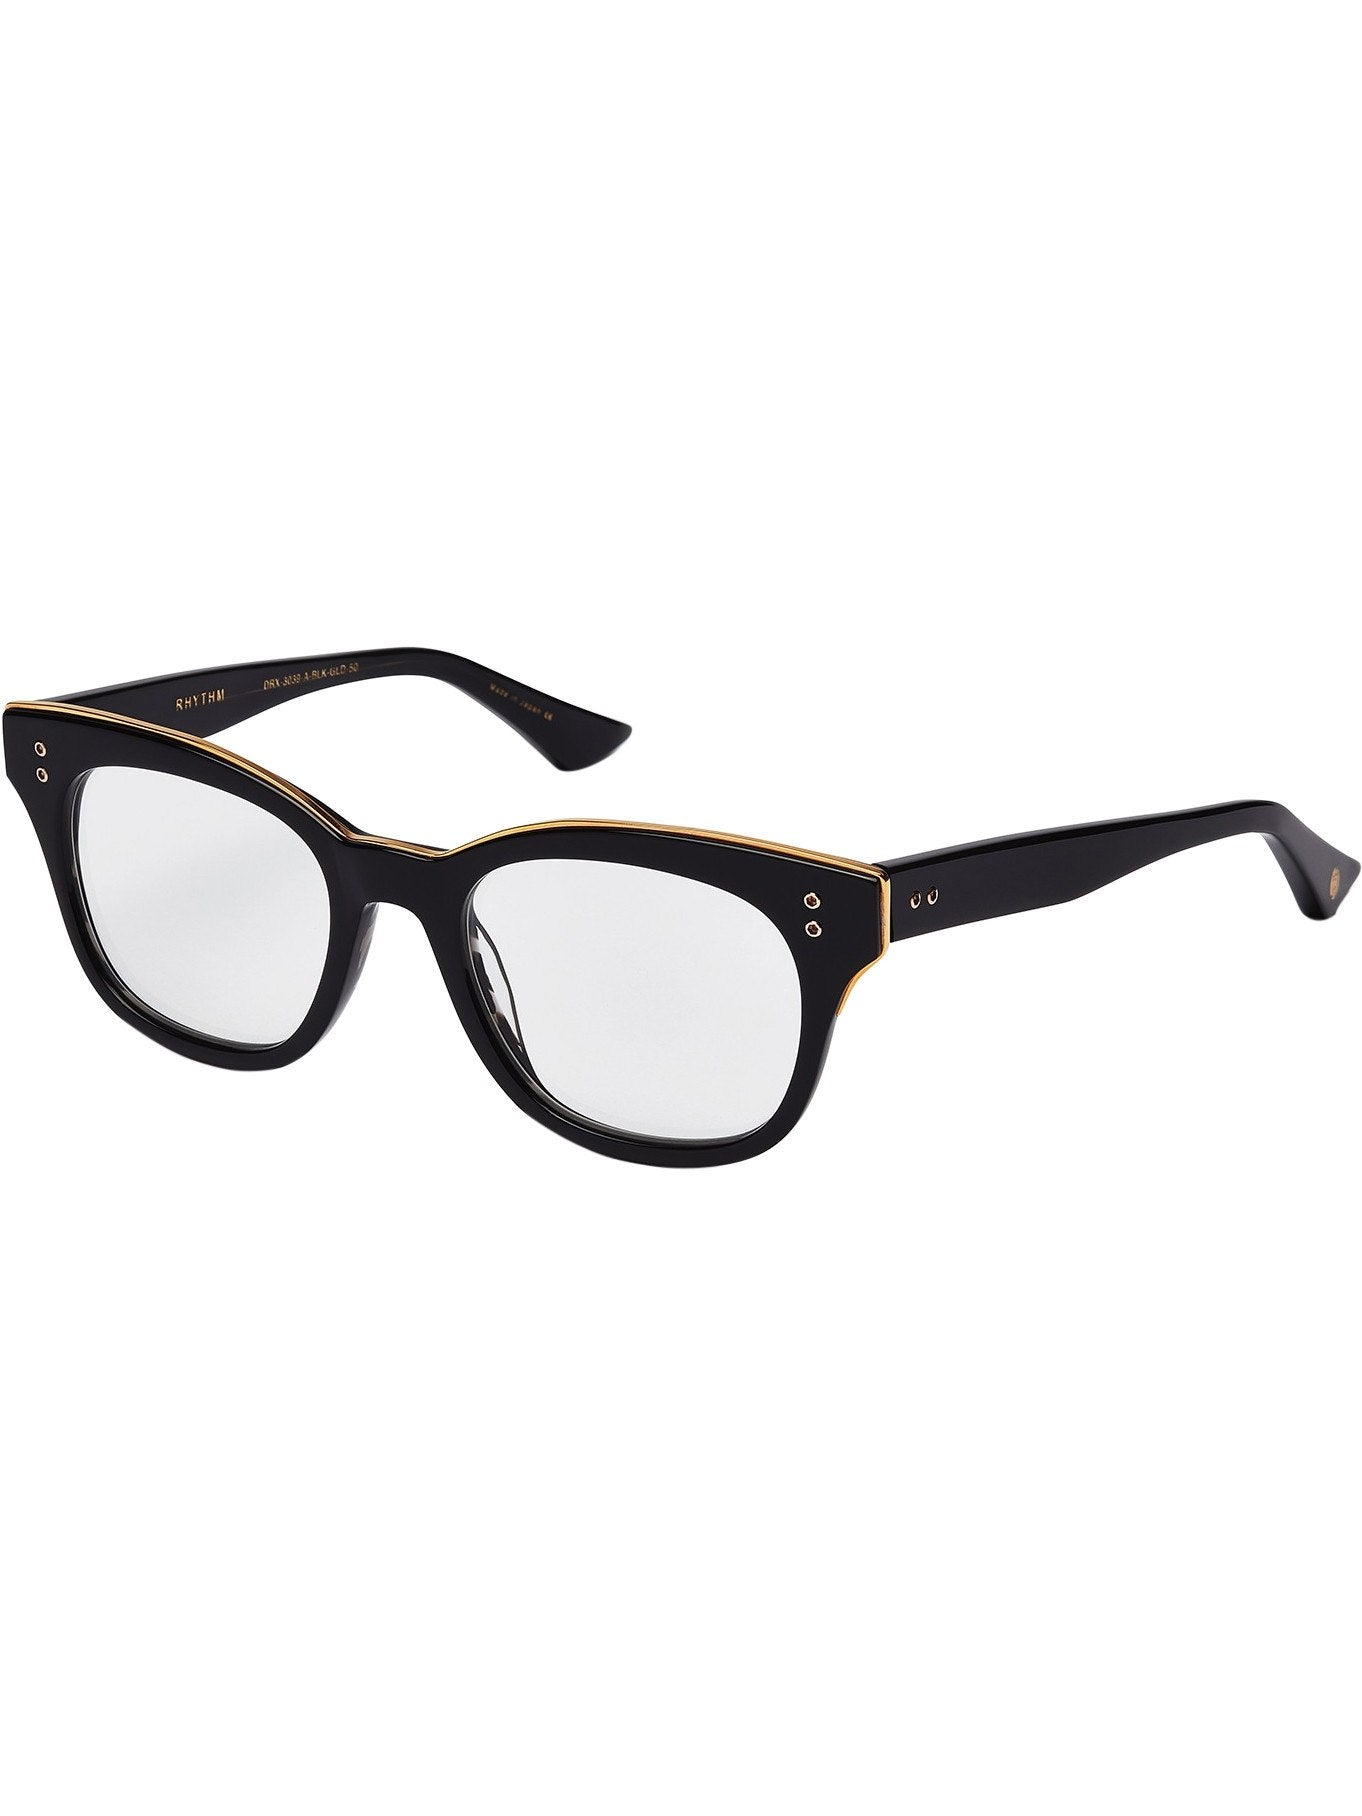 Optical Frame - Dita Rhythm DRX-3039-A Glasses